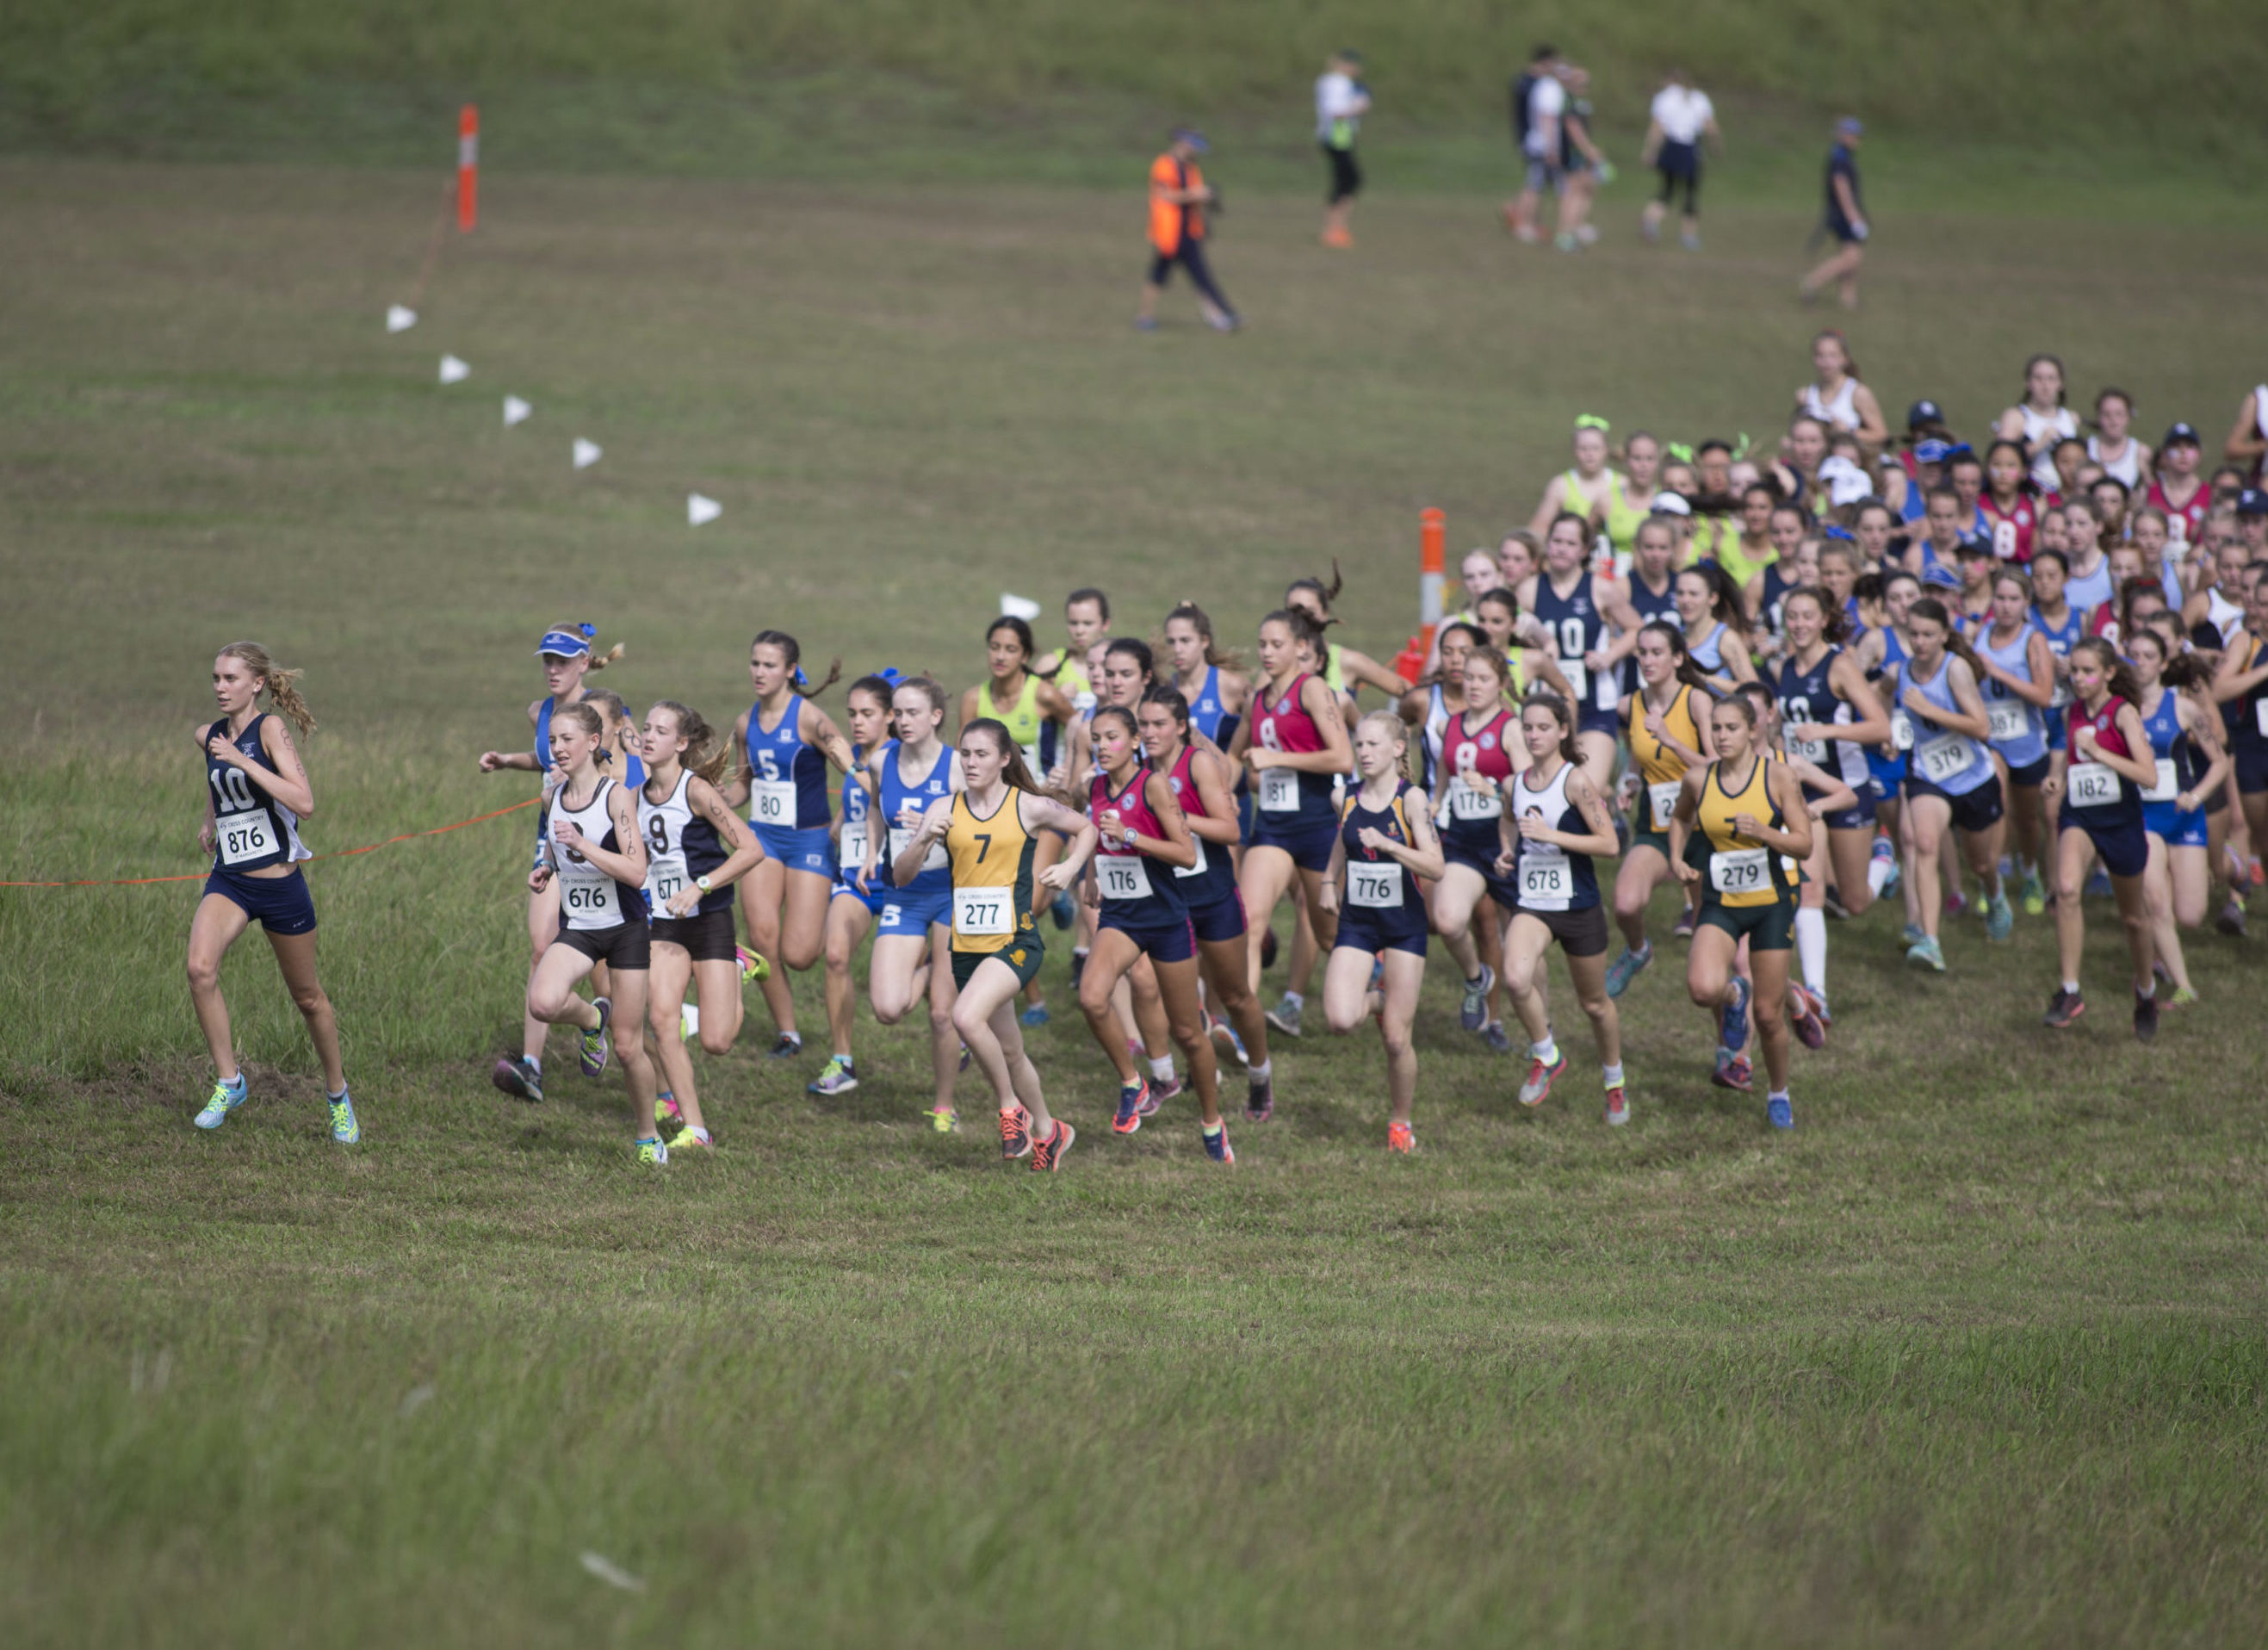 30th Annual Cross Country Summary of Results